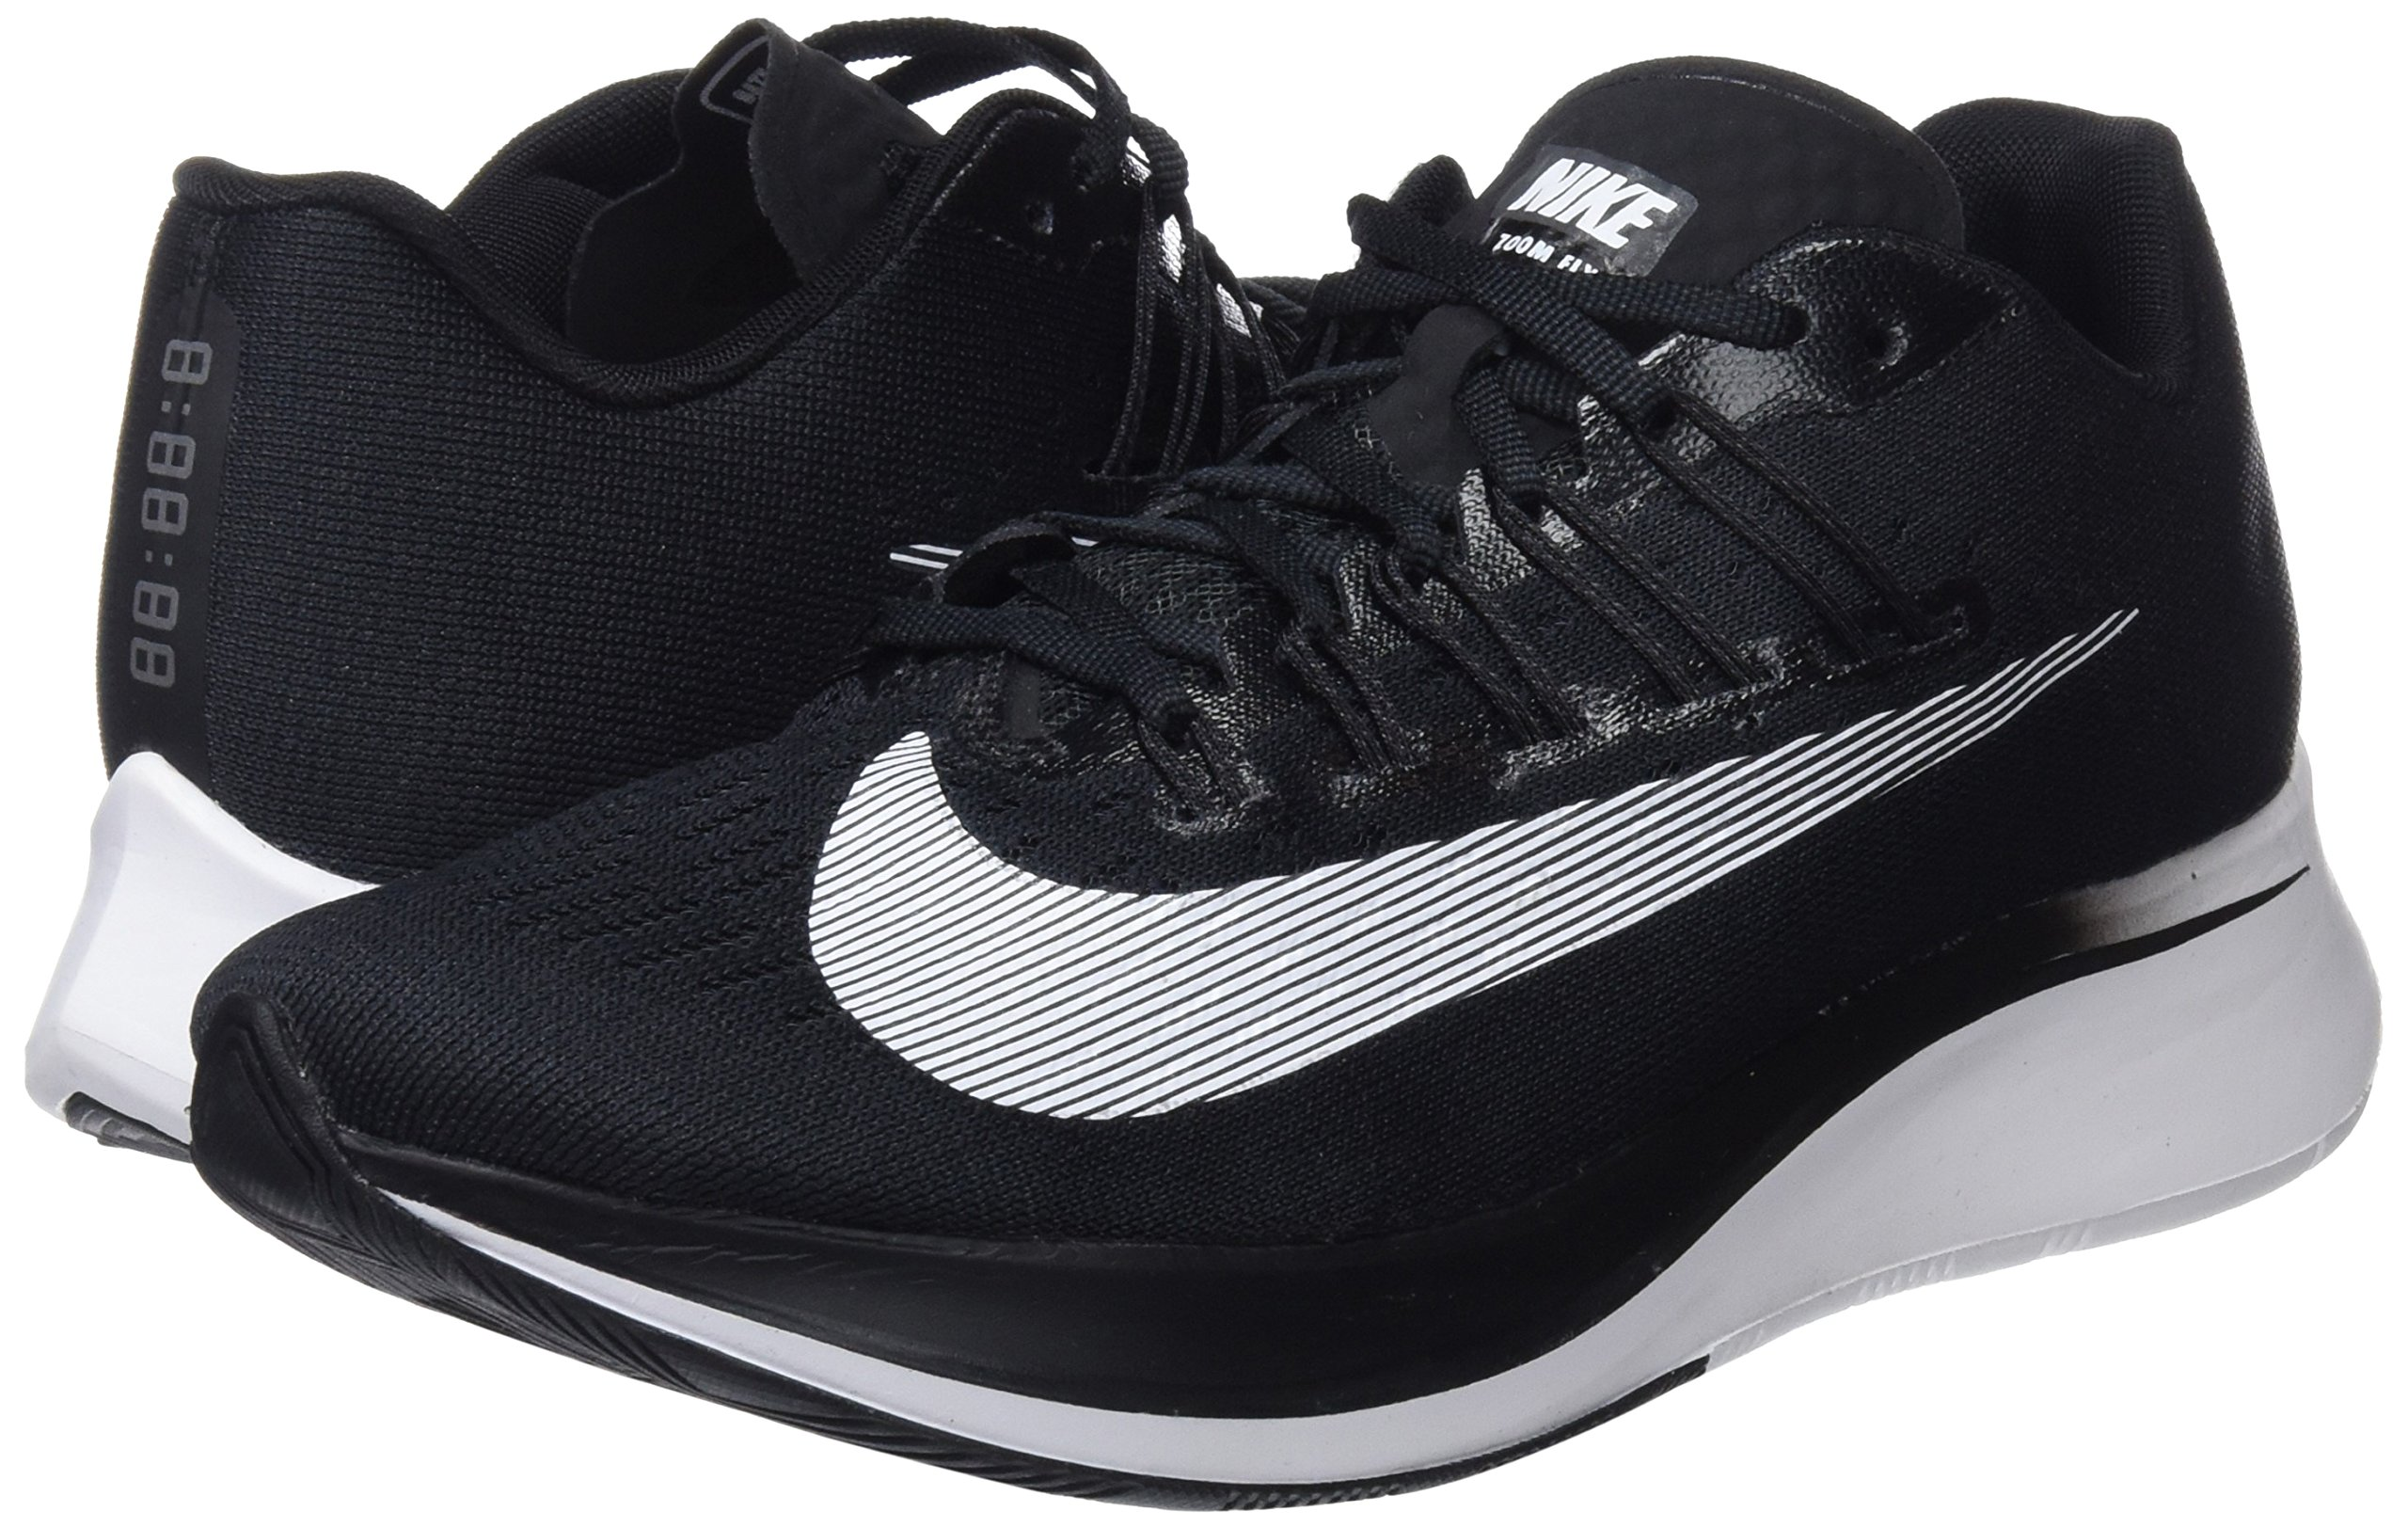 NIKE Women's WMNS Zoom Fly, Black/White, 9 M US by NIKE (Image #5)